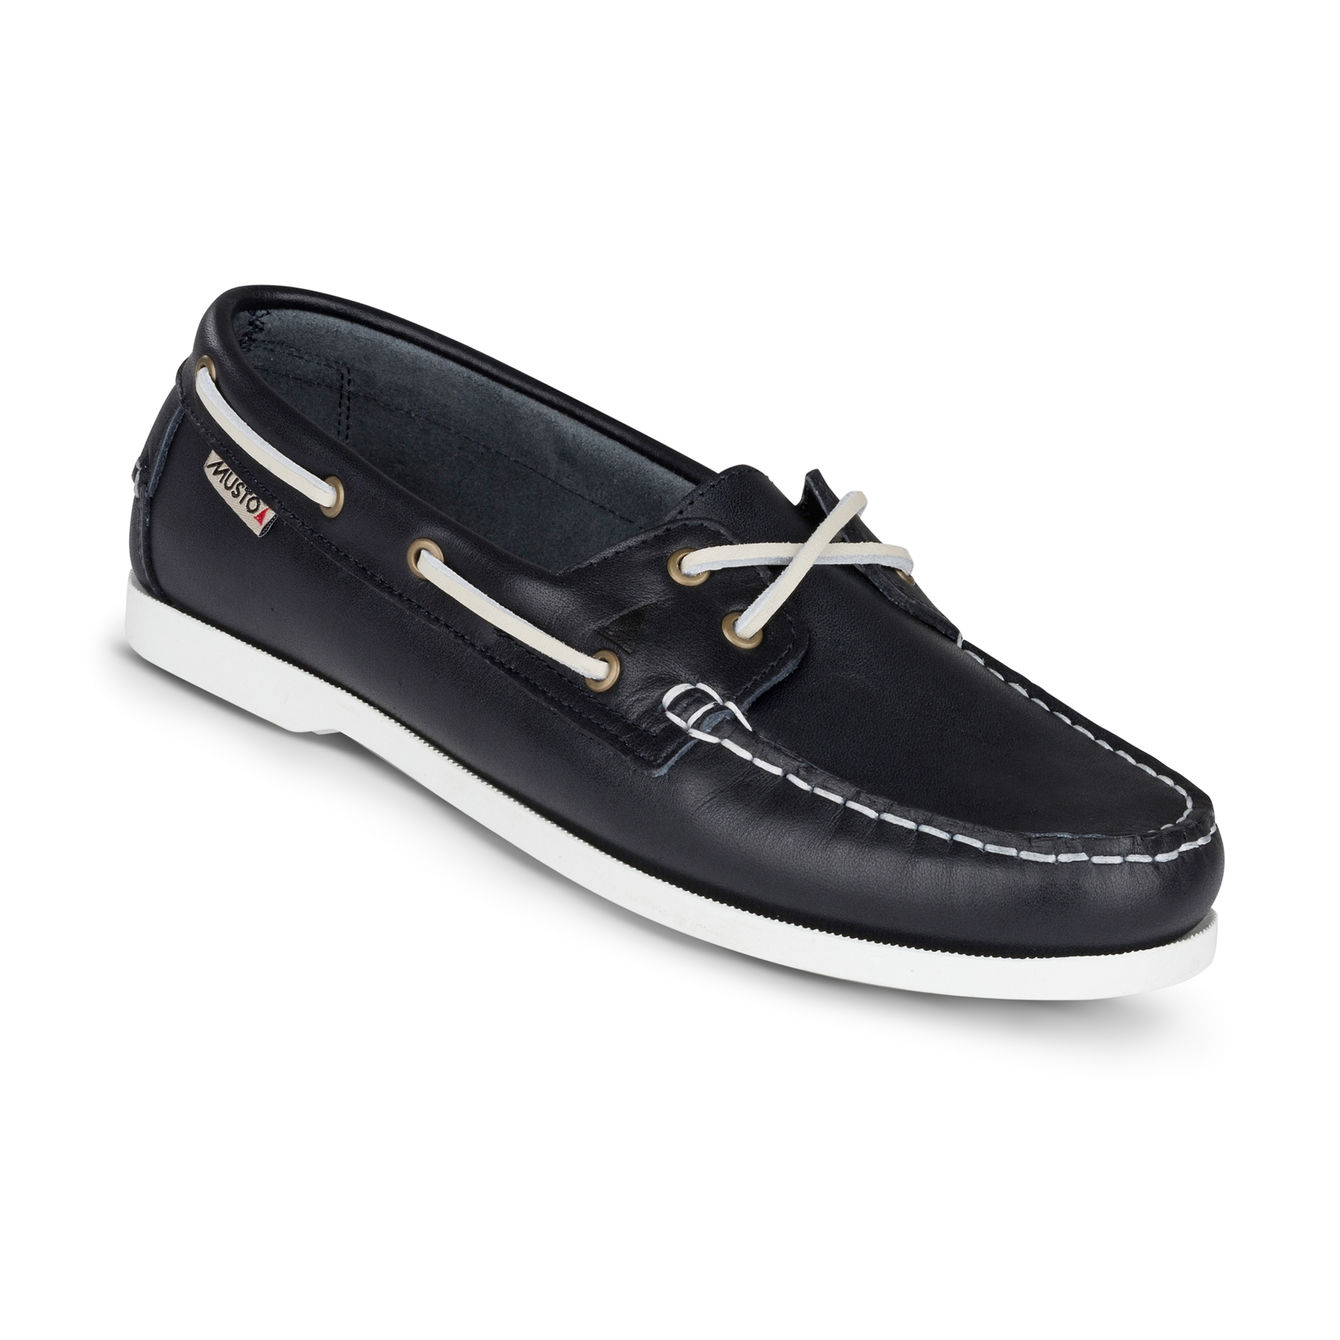 HARBOUR MOCCASIN FW